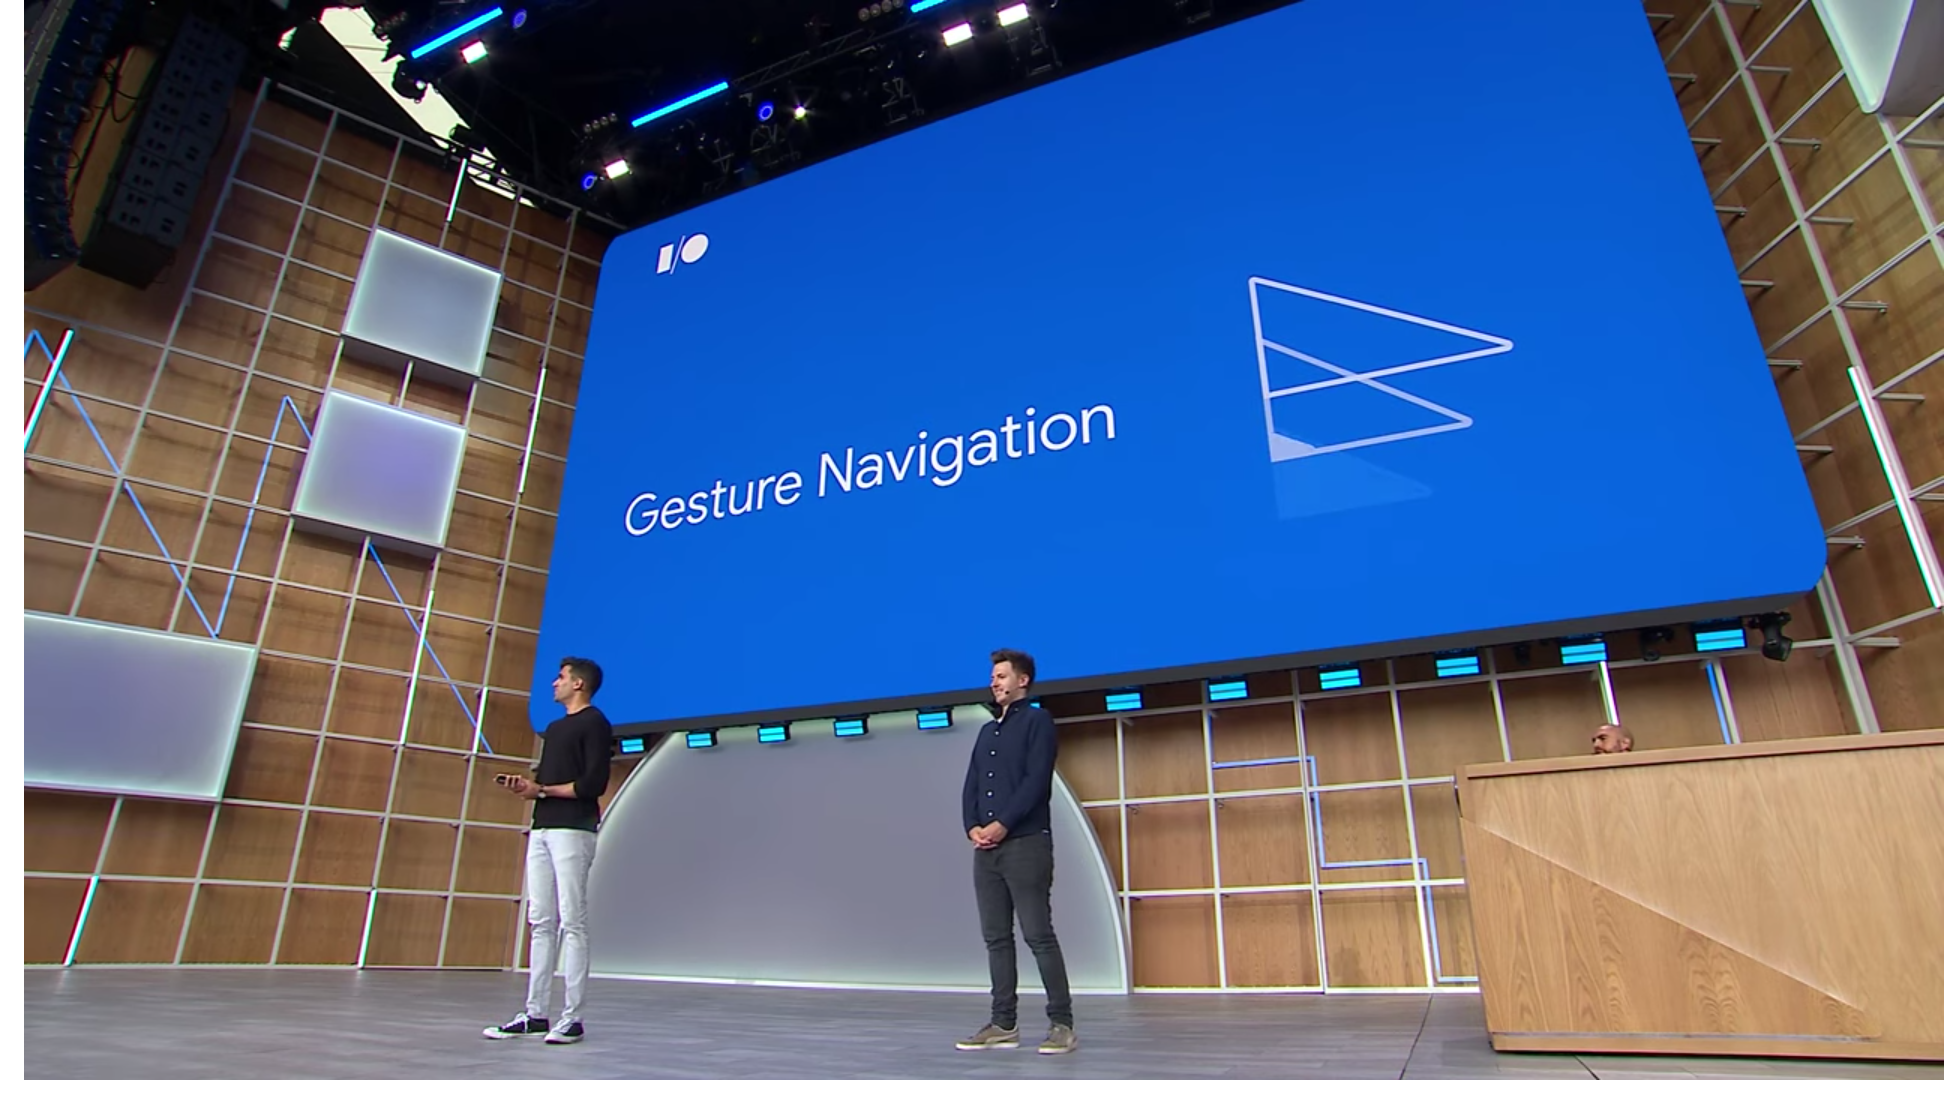 Android Q will include gesture and 3-button navigation as default options, but OEMs can still add their own